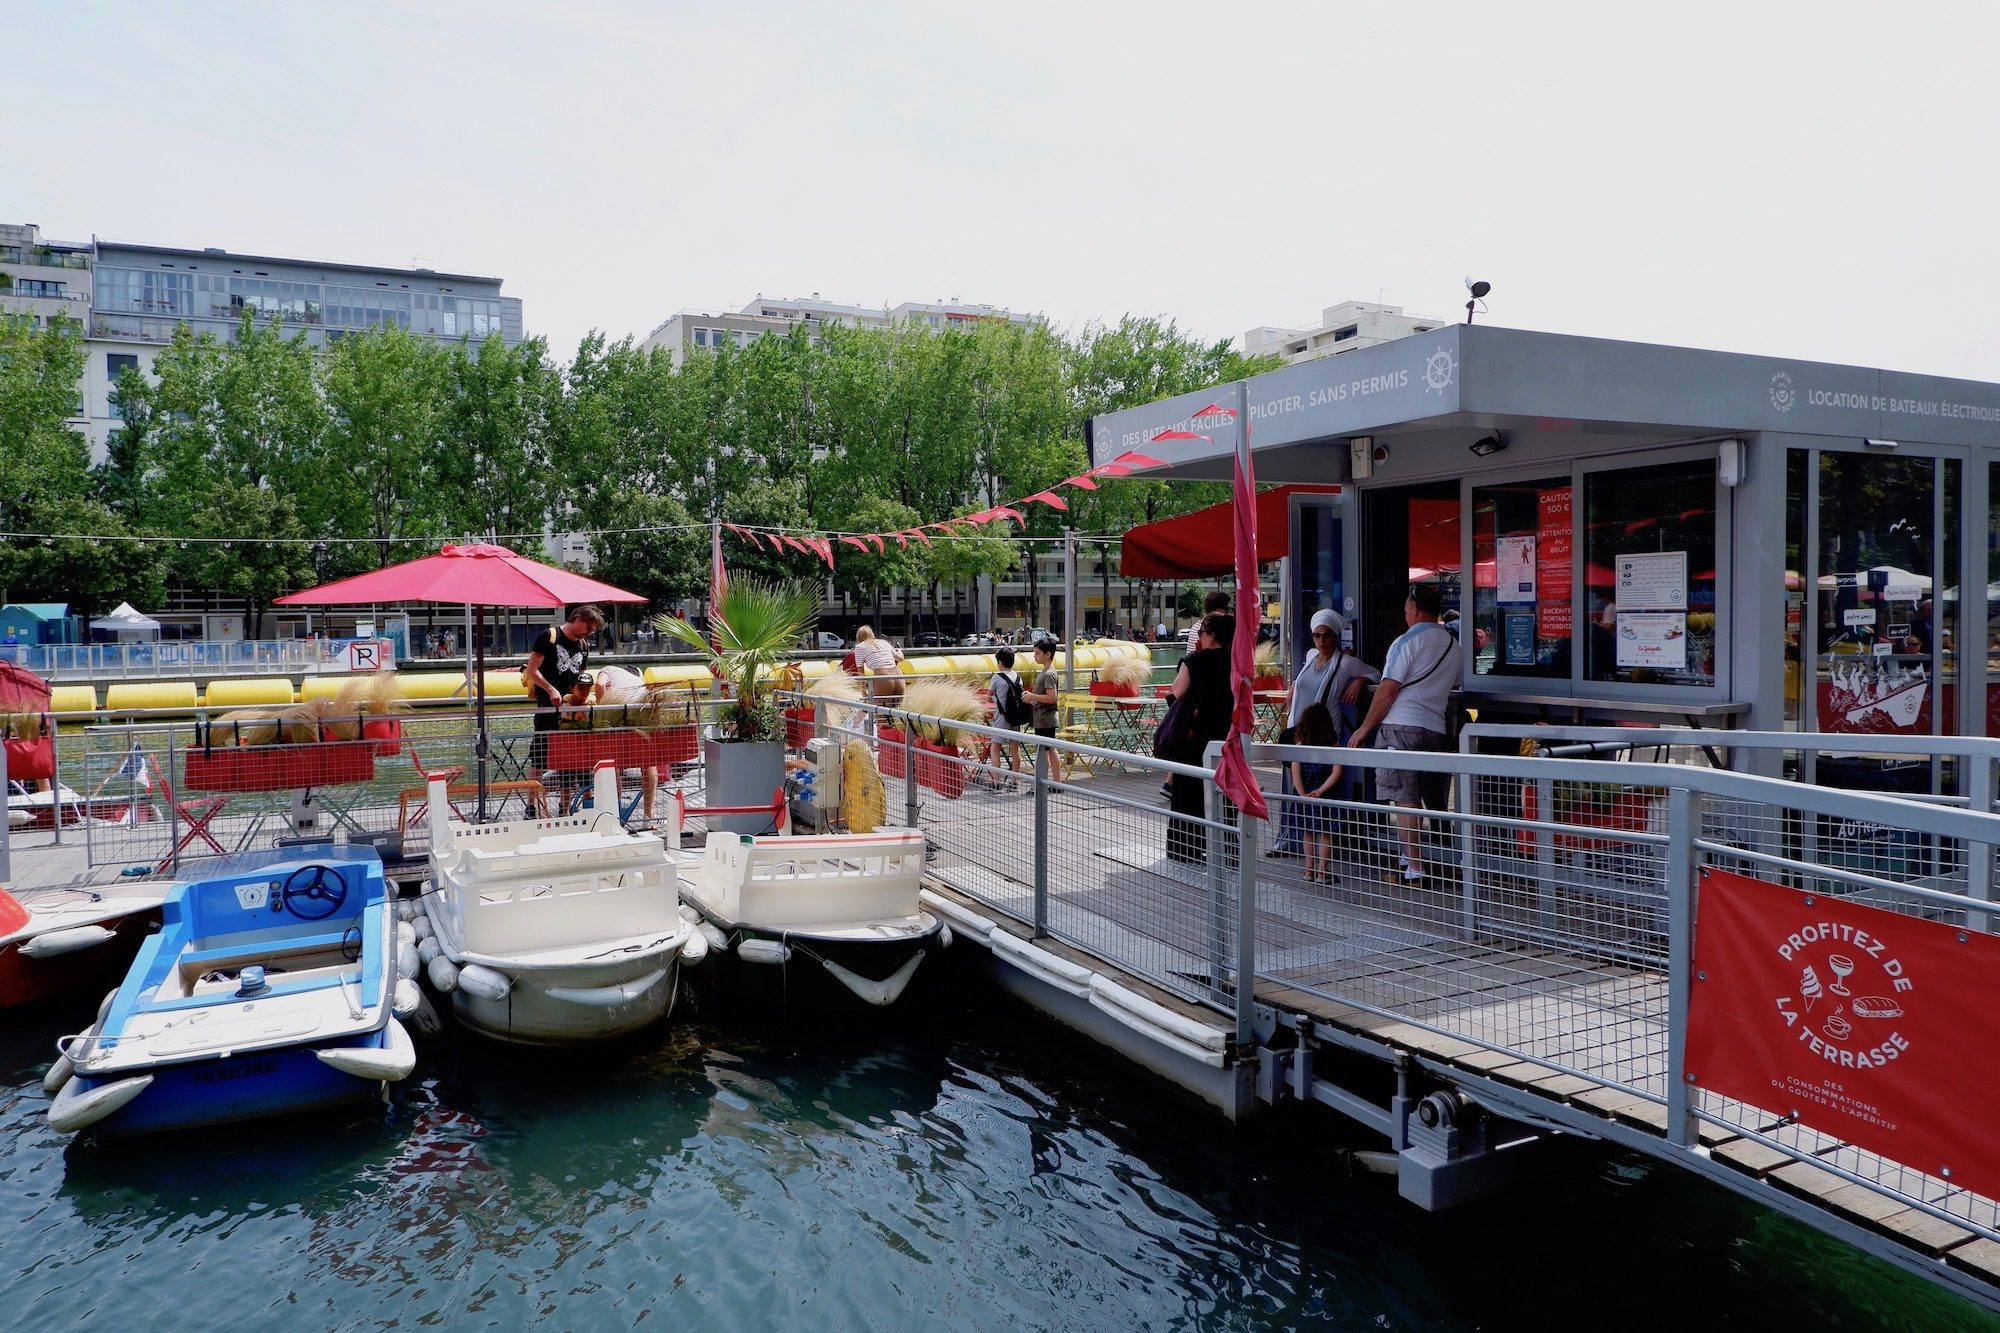 You can rent a small boat to sail along the canal in Paris from this floating pier.